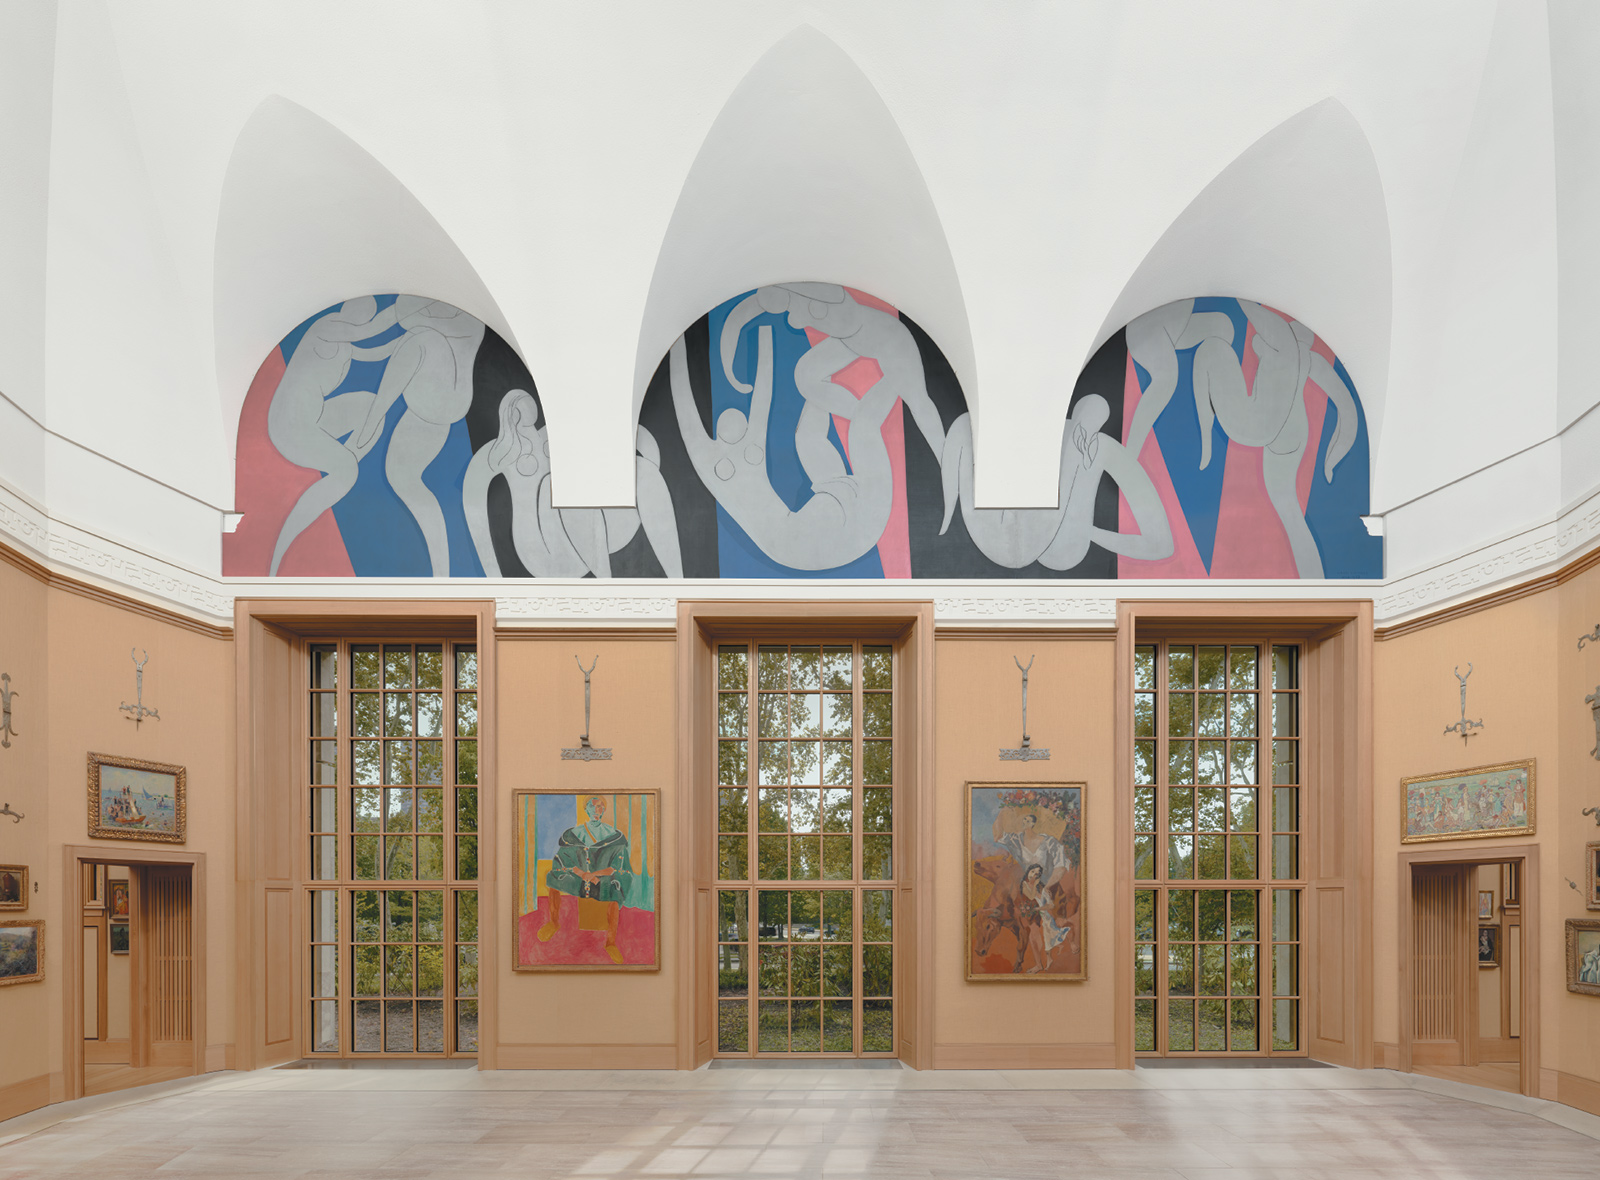 Matisse's first major mural, The Dance (1932–1933), commissioned by Albert Barnes in 1930 and installed at the new Barnes Foundation museum building in Philadelphia in 2012. Below are works by William James Glackens, Matisse, Picasso, and Maurice Brazil Prendergast.